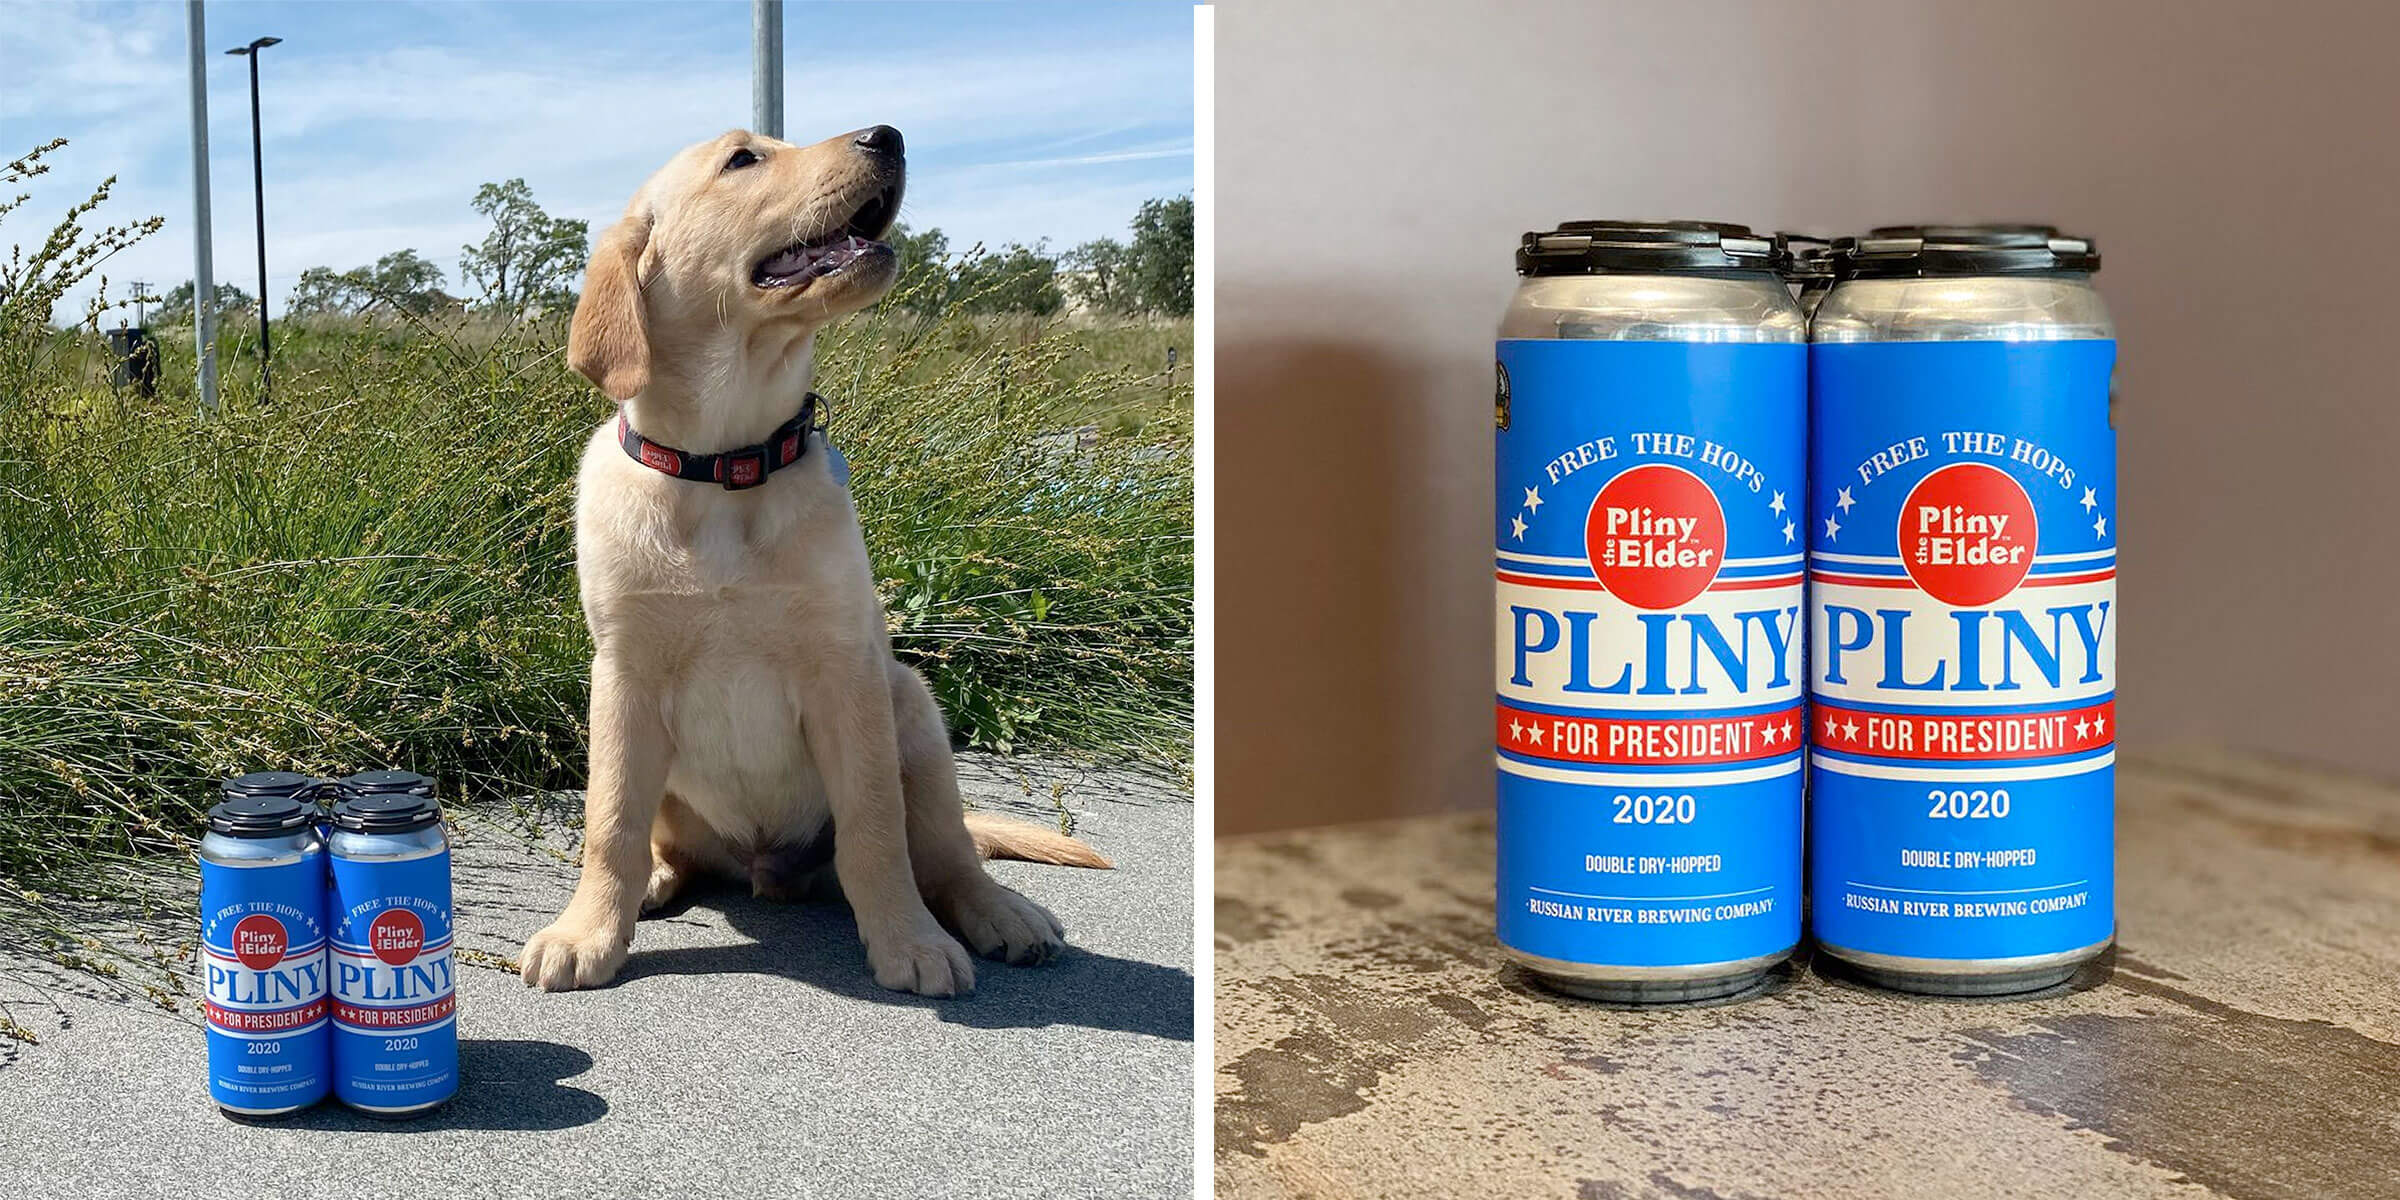 For the first time ever, Russian River Brewing Company announced a canned variation of their classic Pliny the Elder DIPA, available for delivery by mail.